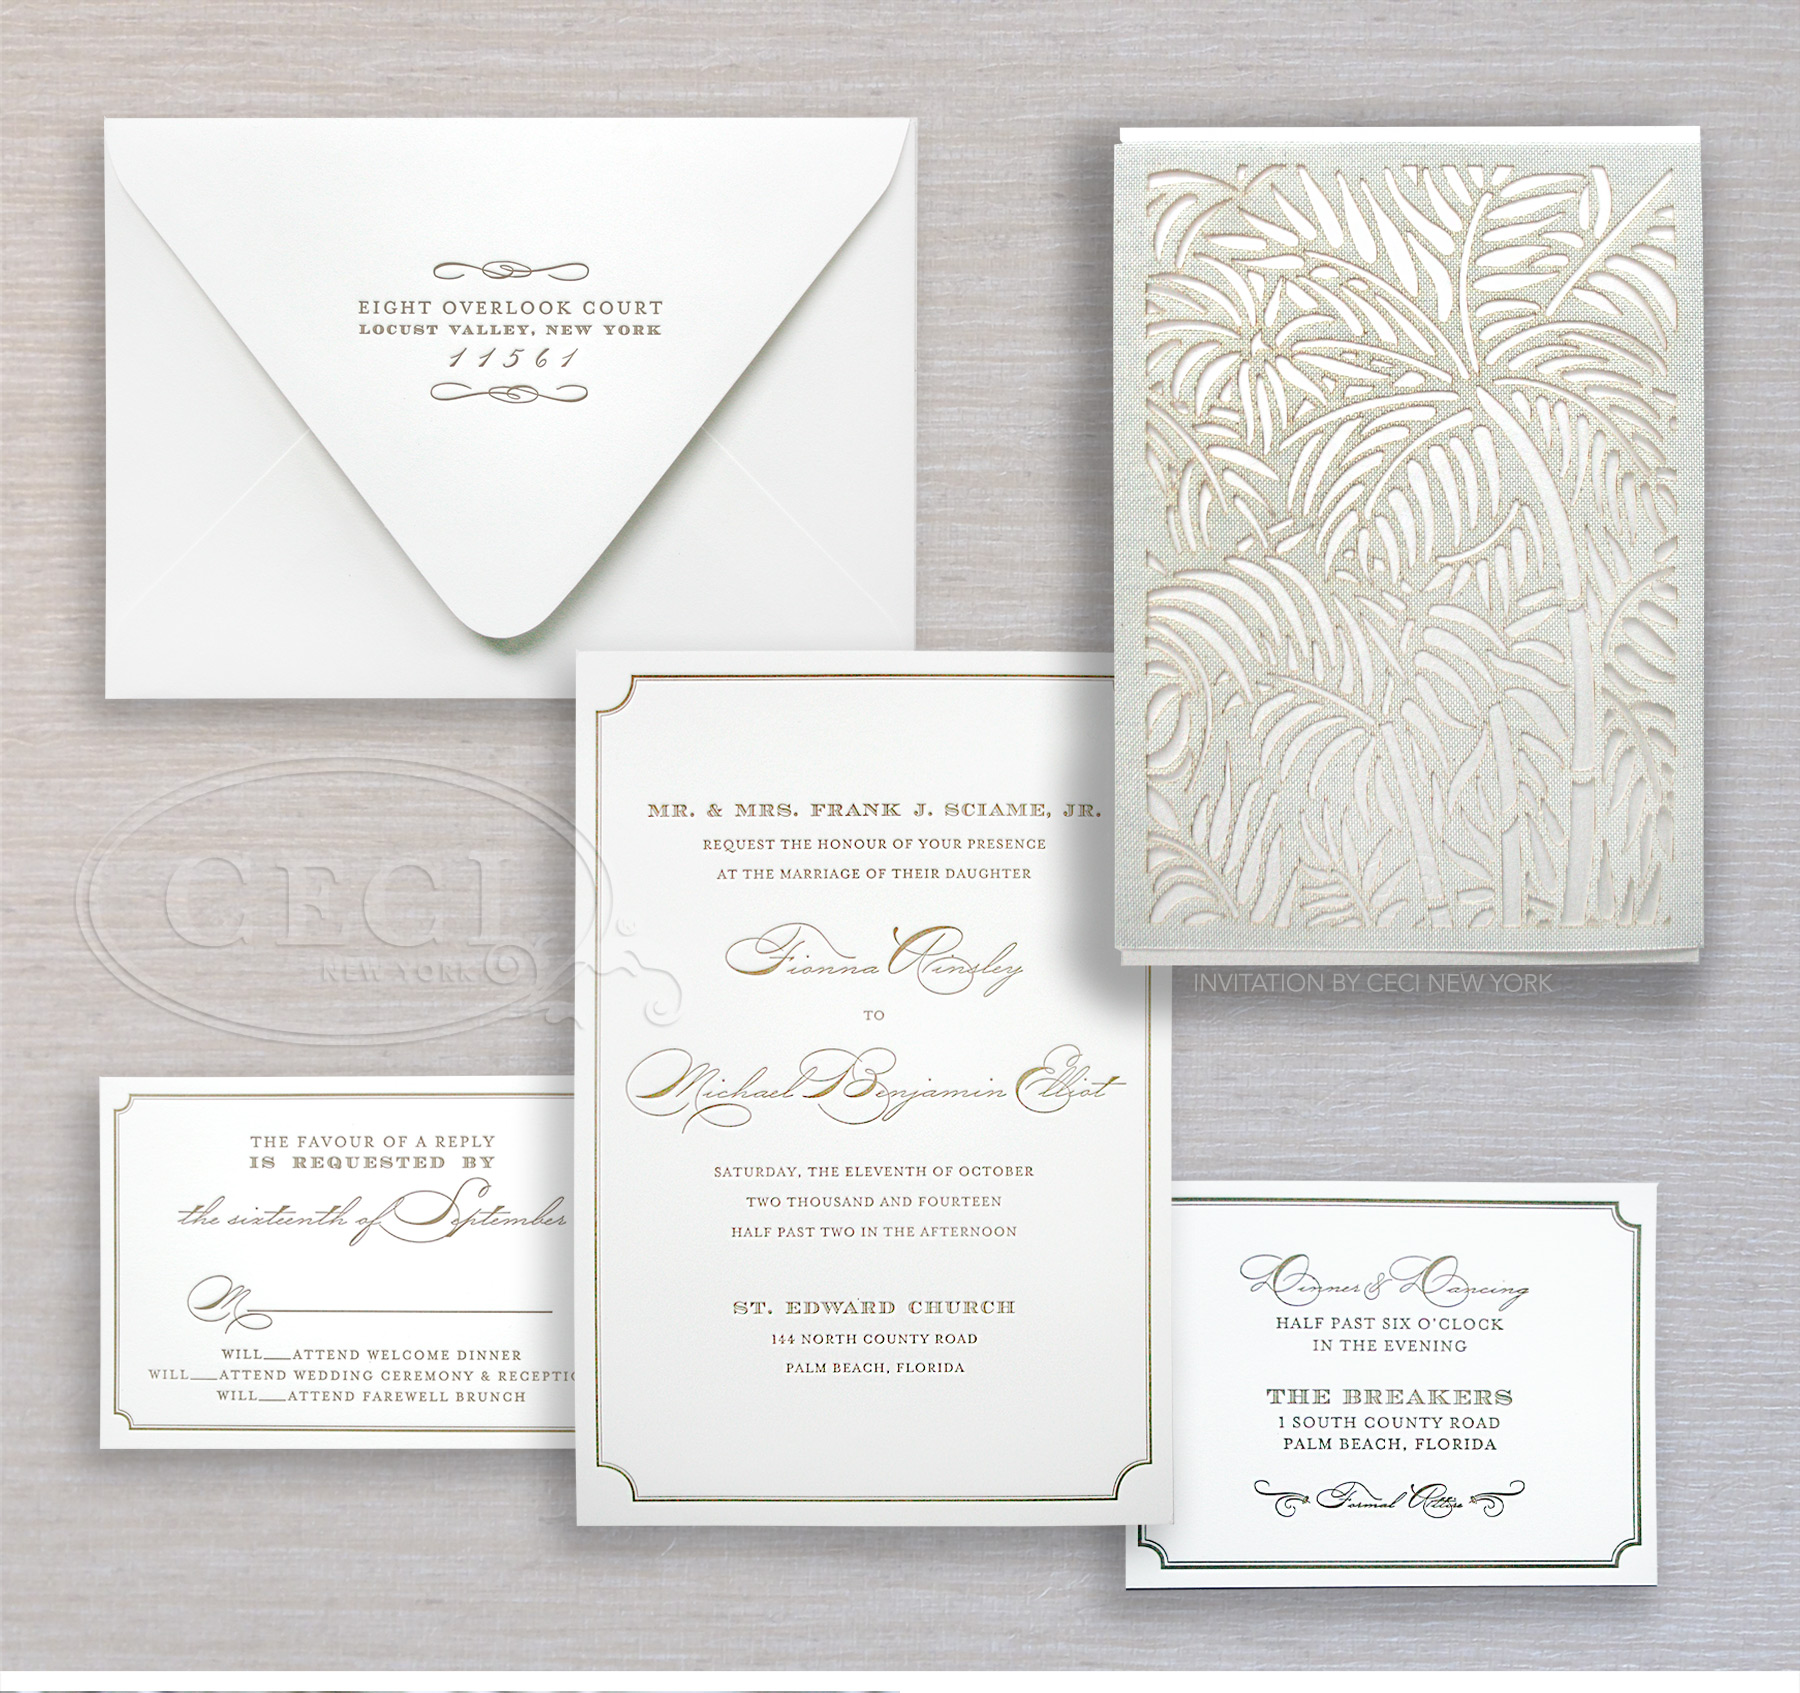 Luxury Wedding Invitations by Ceci New York - Our Muse - Luxe Beach Wedding in Palm Beach: Fiona and Michael, Part 1 - Be inspired by Fiona and Miachel's luxe beach wedding in Palm Beach, Florida. - custom wedding invitations, luxury wedding invitations, couture, palm beach, florida, ceci new york